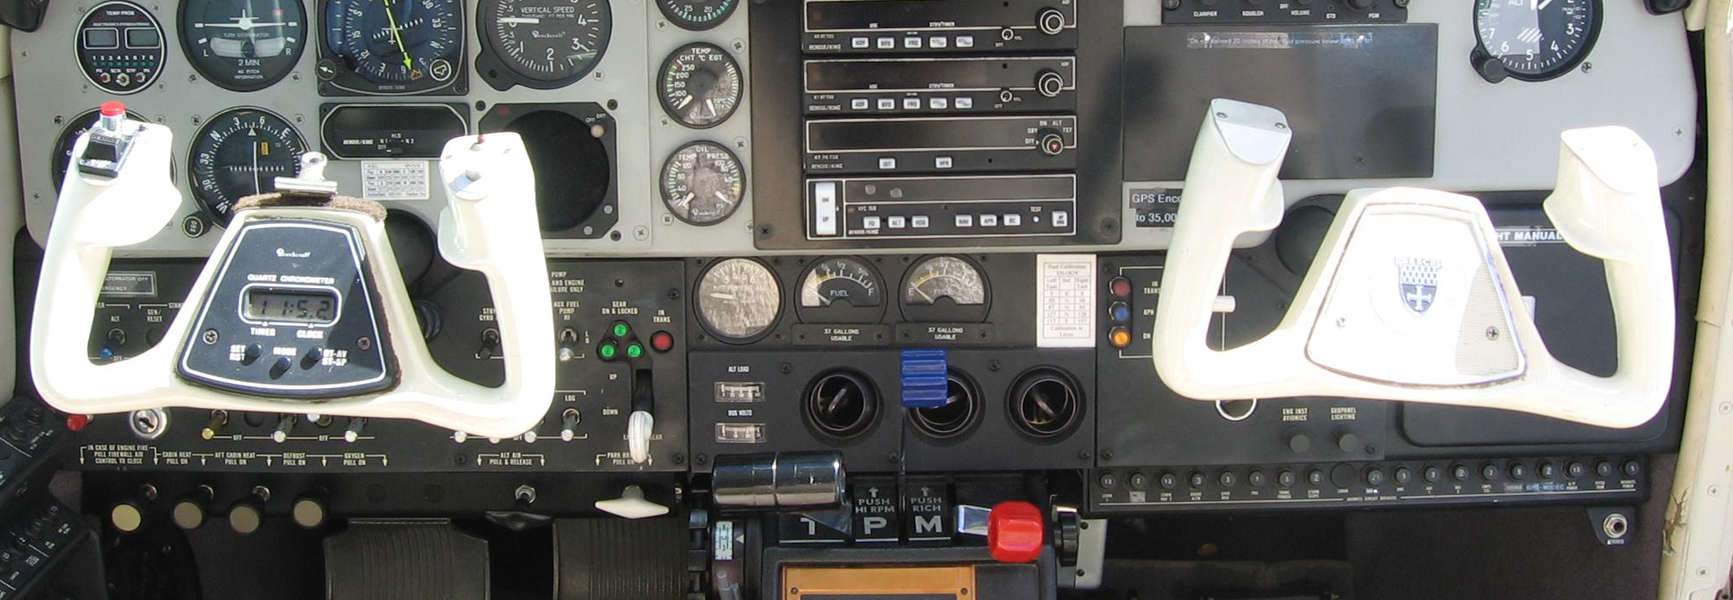 Quality Avionics for Aircraft Upgrades and Maintenance located in Archerfield, Brisbane.